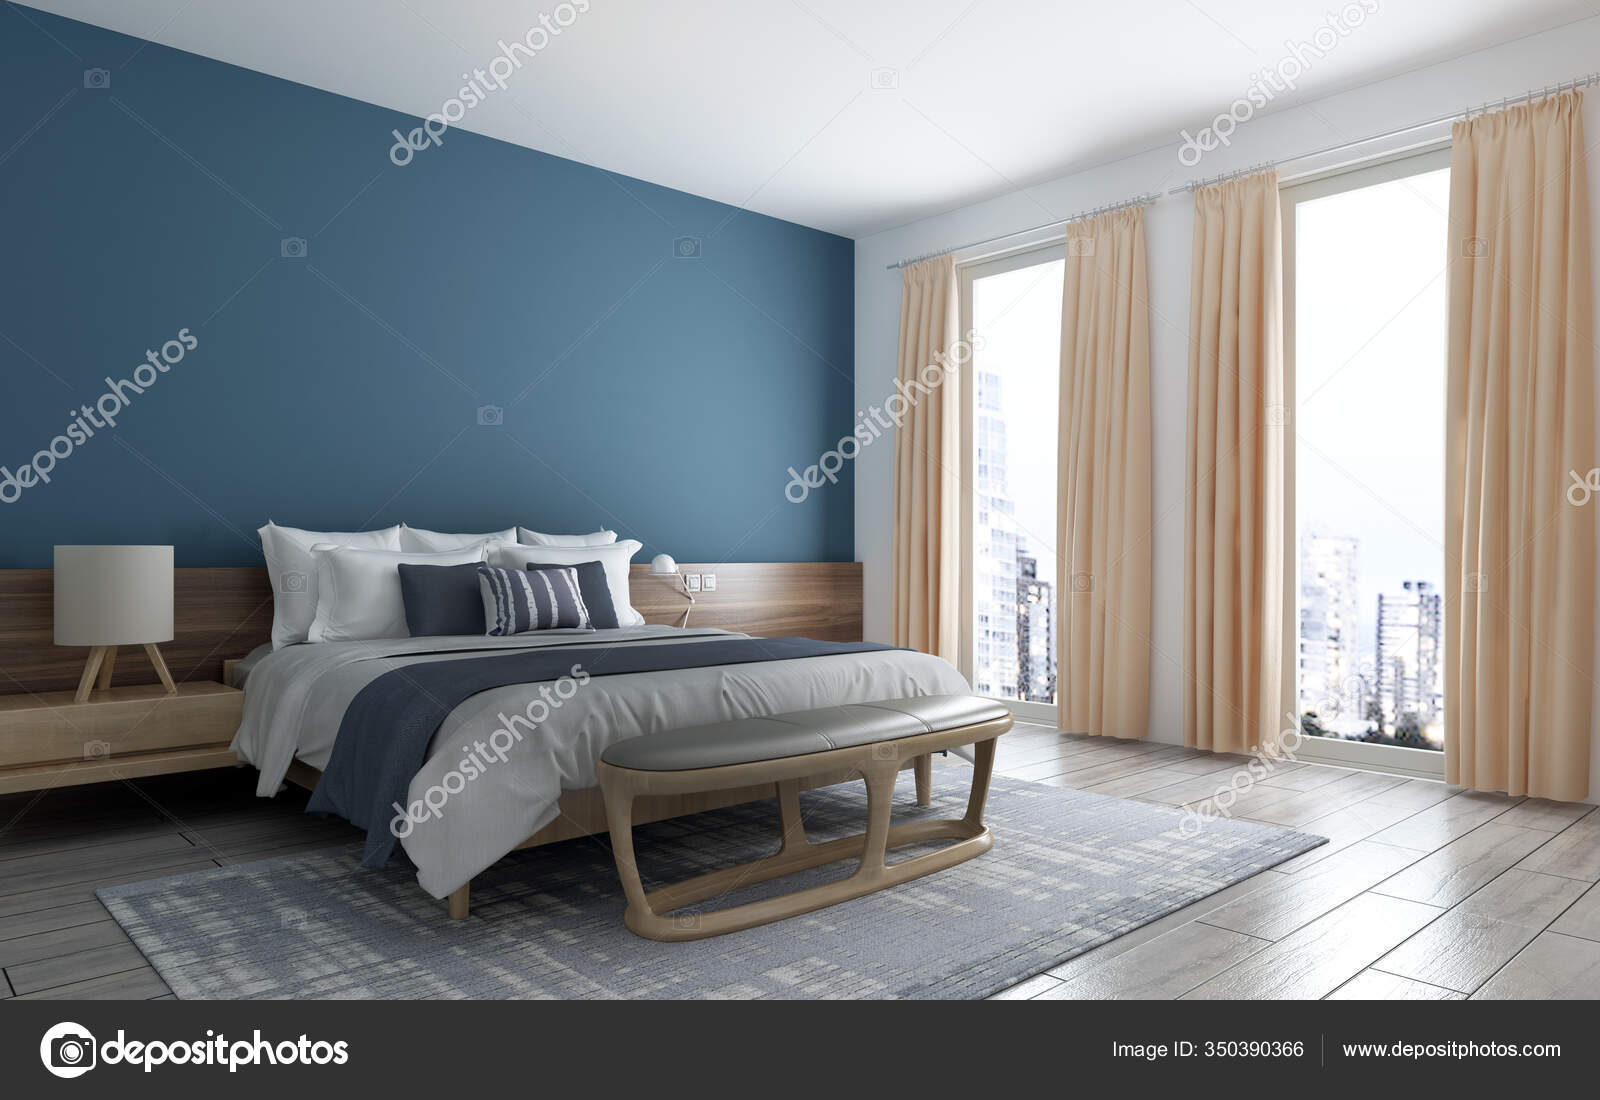 Modern Bedroom Interior Design Blue Wall Texture Background Patternand Cityscape Stock Photo C Teeraphan 350390366